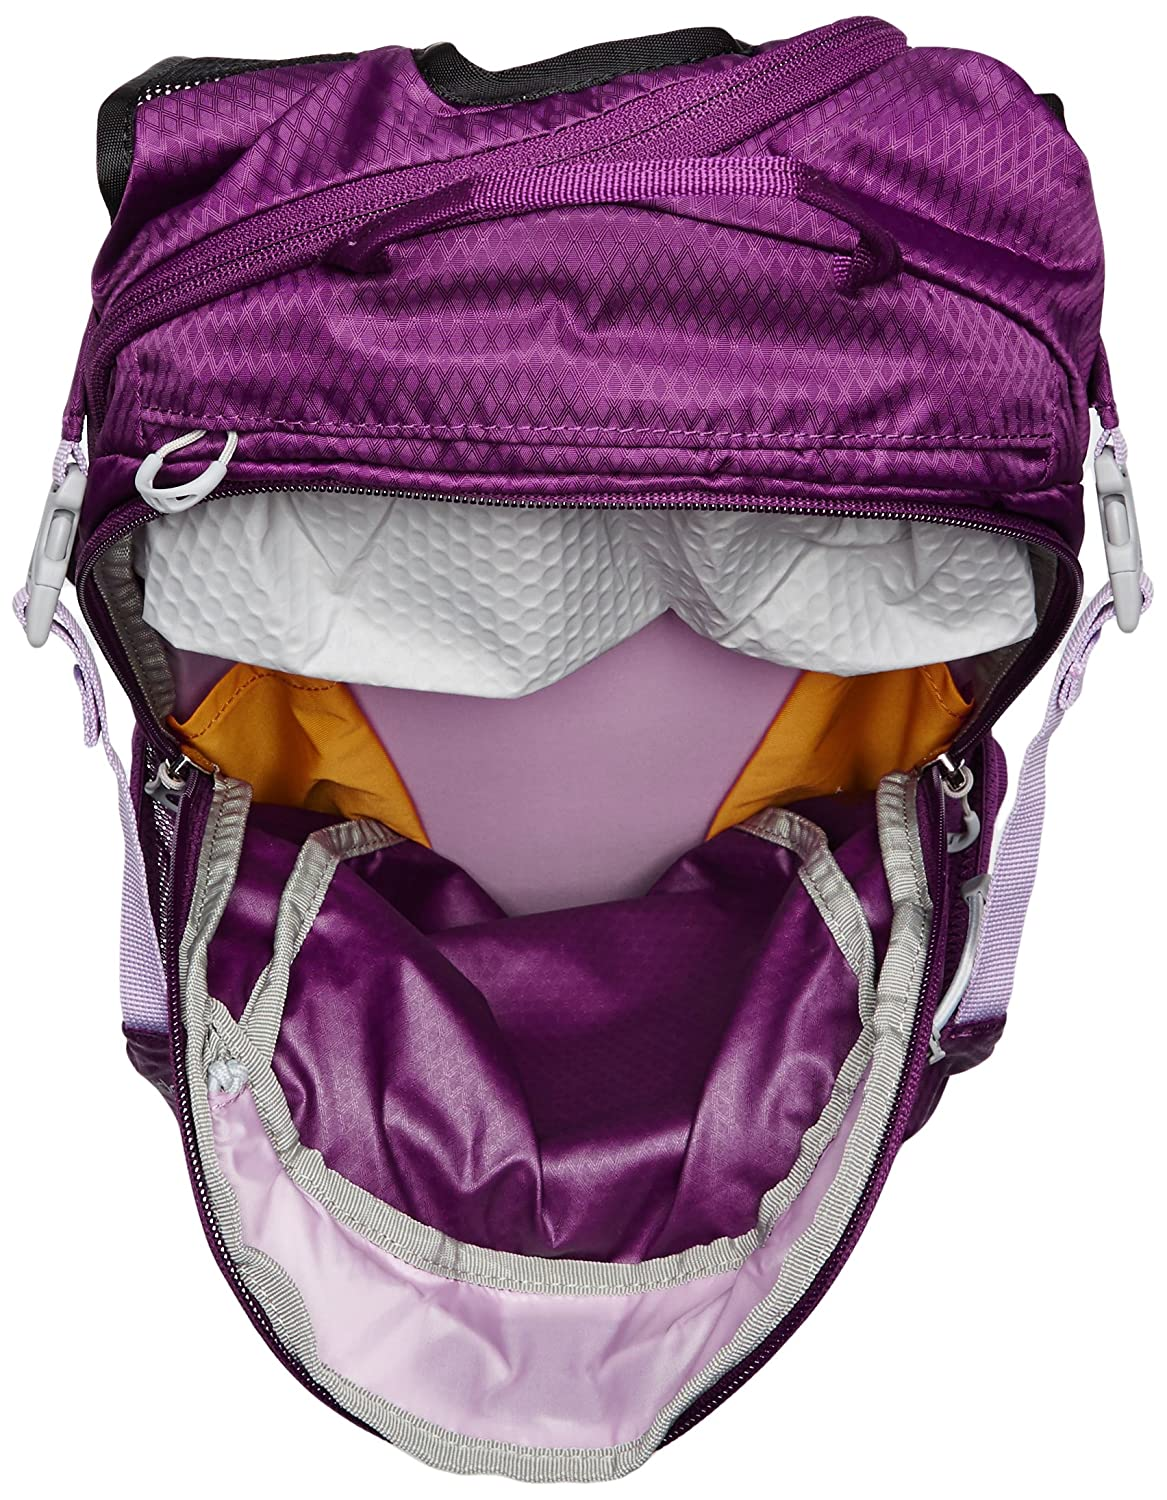 Amazon.com : Osprey Womens Verve 9 Hydration Pack, Passion Purple, One Size : Hiking Hydration Packs : Sports & Outdoors